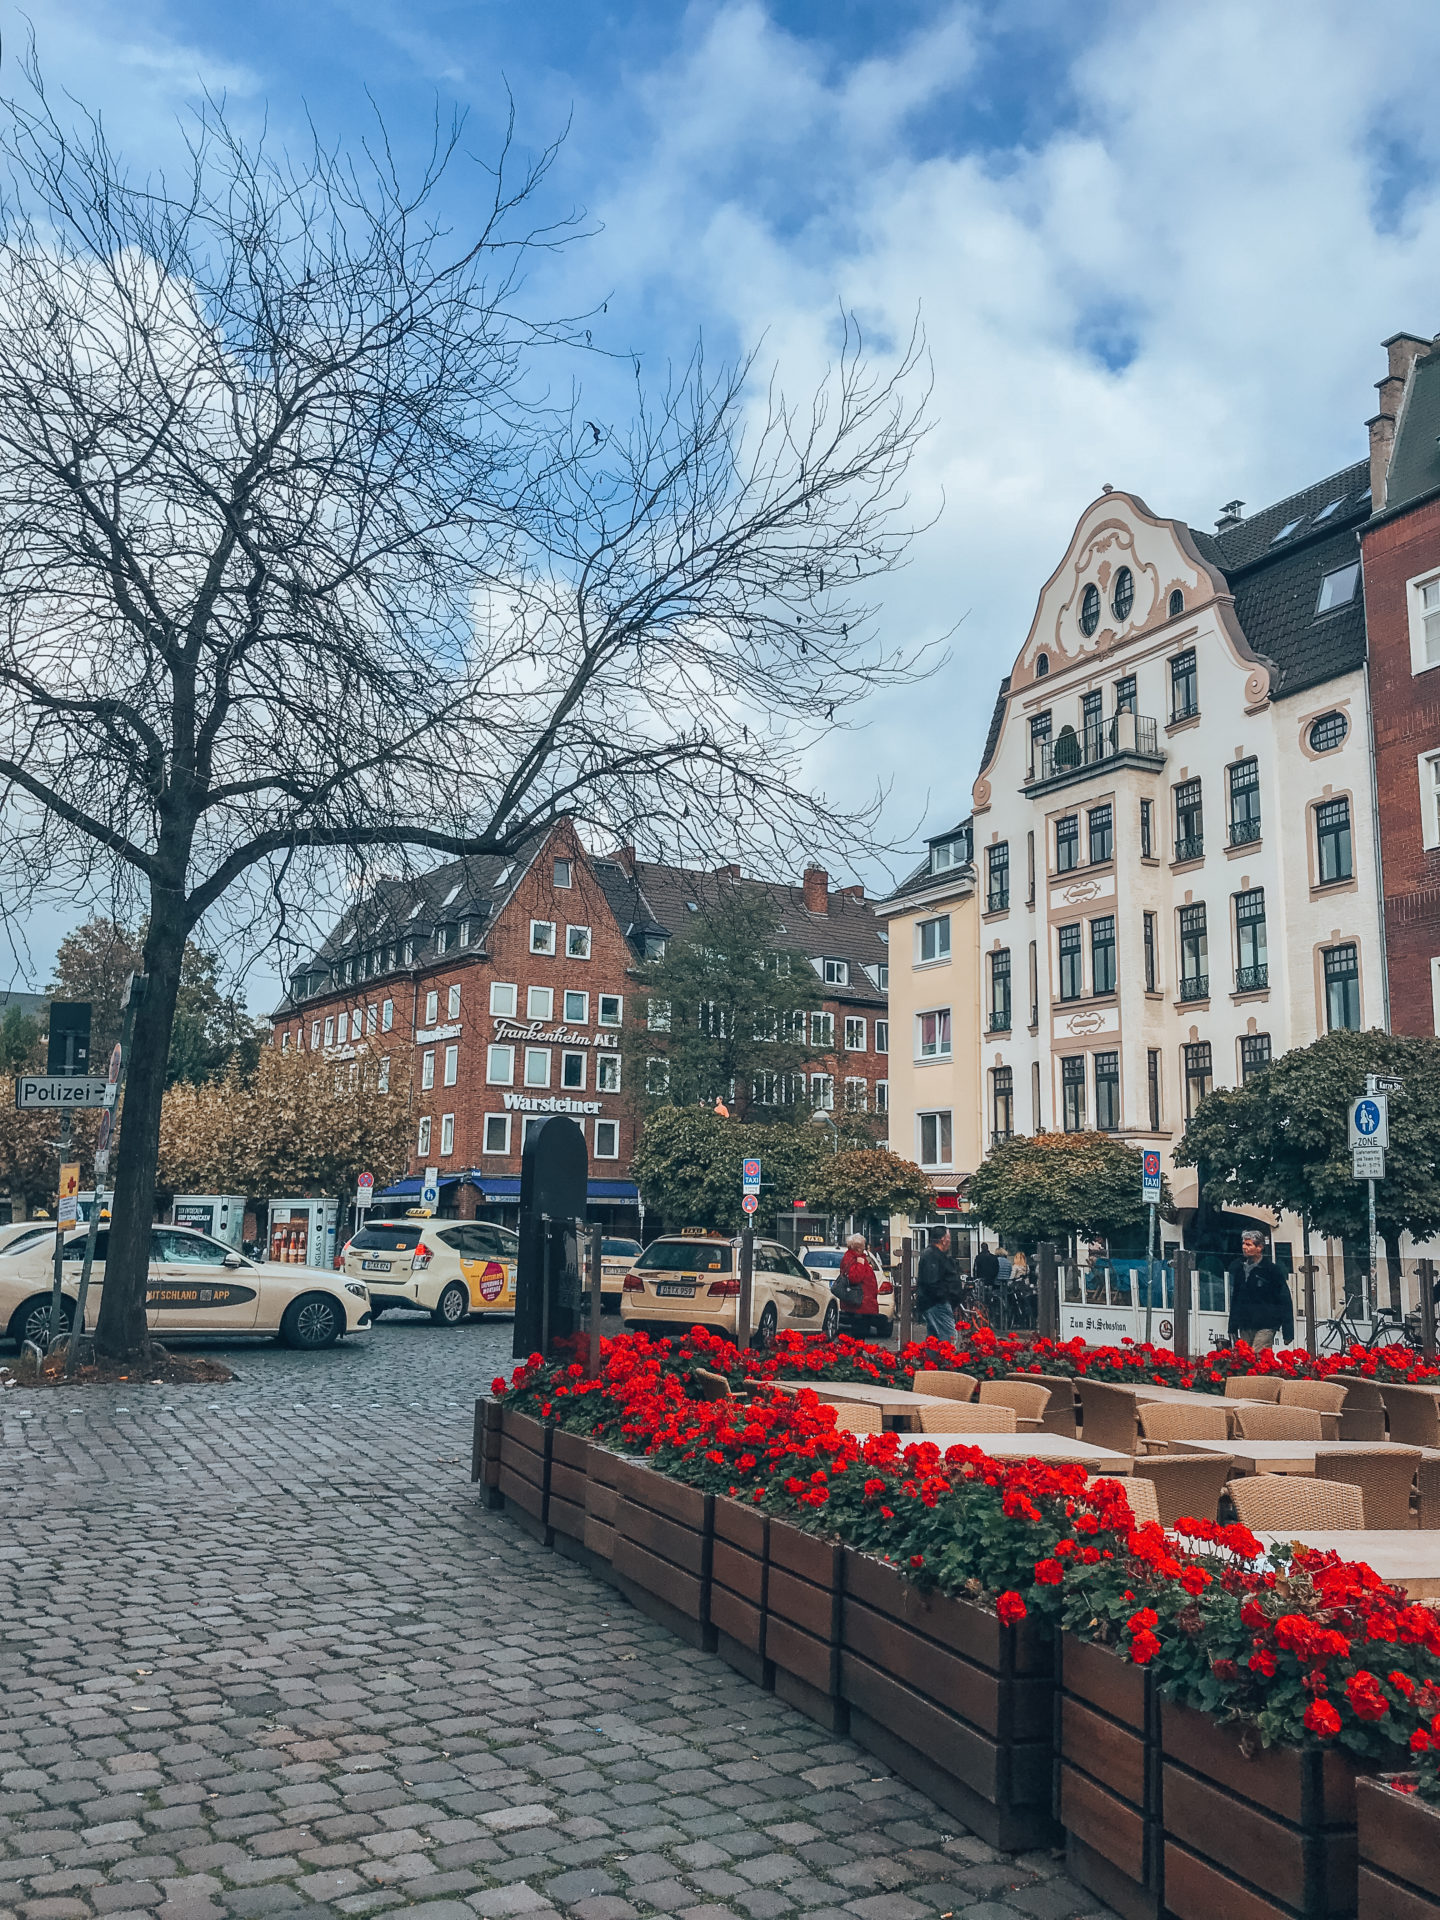 Near Burgplatz in Düsseldorf